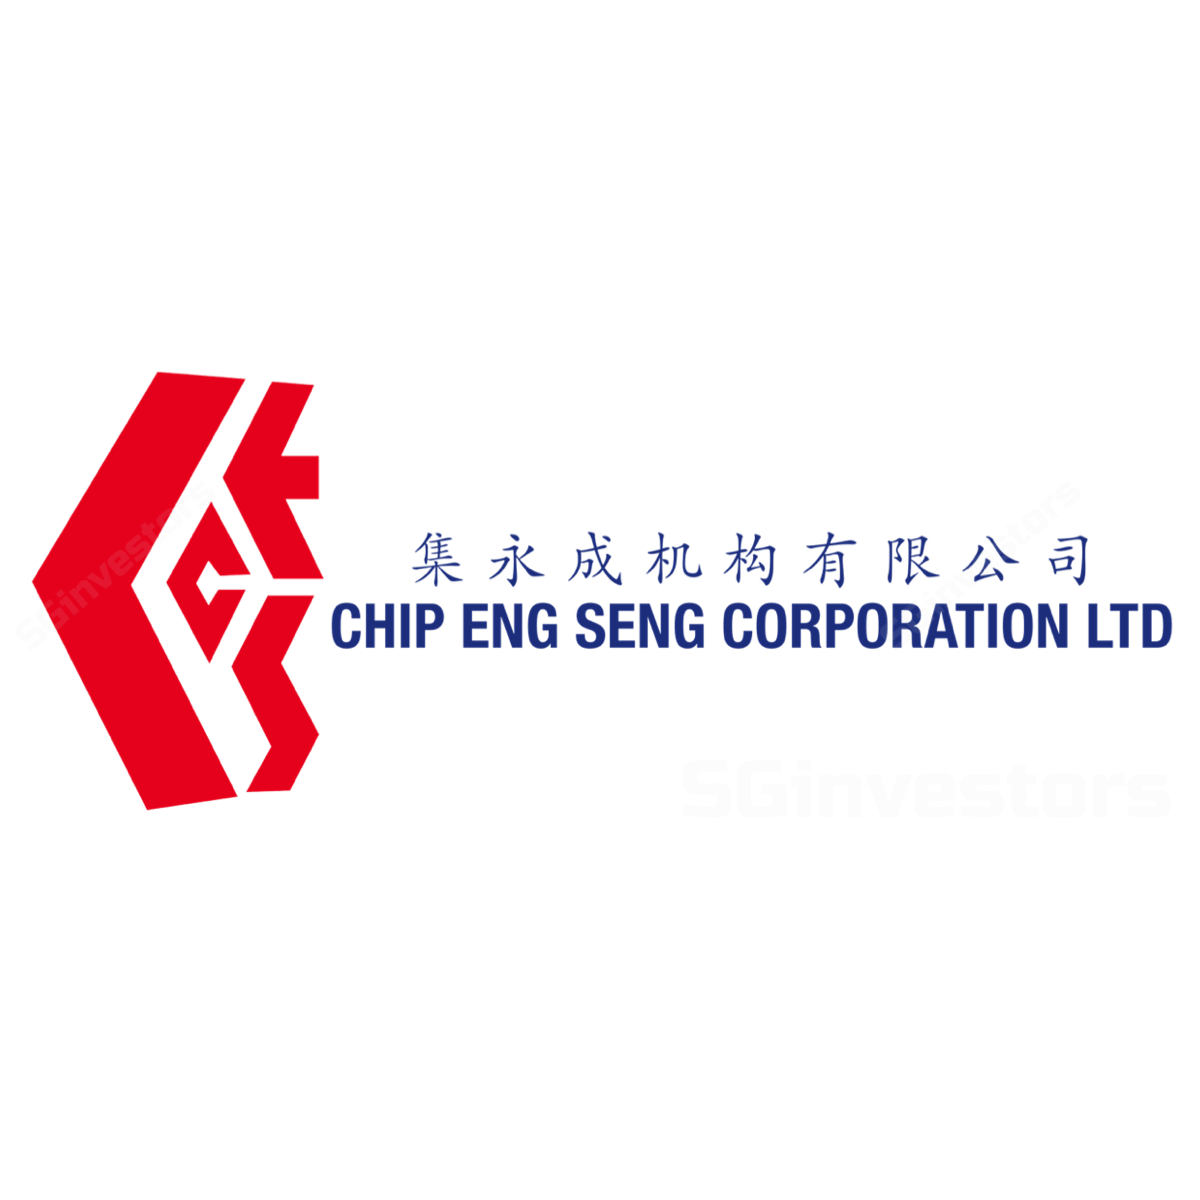 Chip Eng Seng Corp (CHIP SP) - UOB Kay Hian 2018-03-20: Cheapest Dividend Proxy To Property Recovery